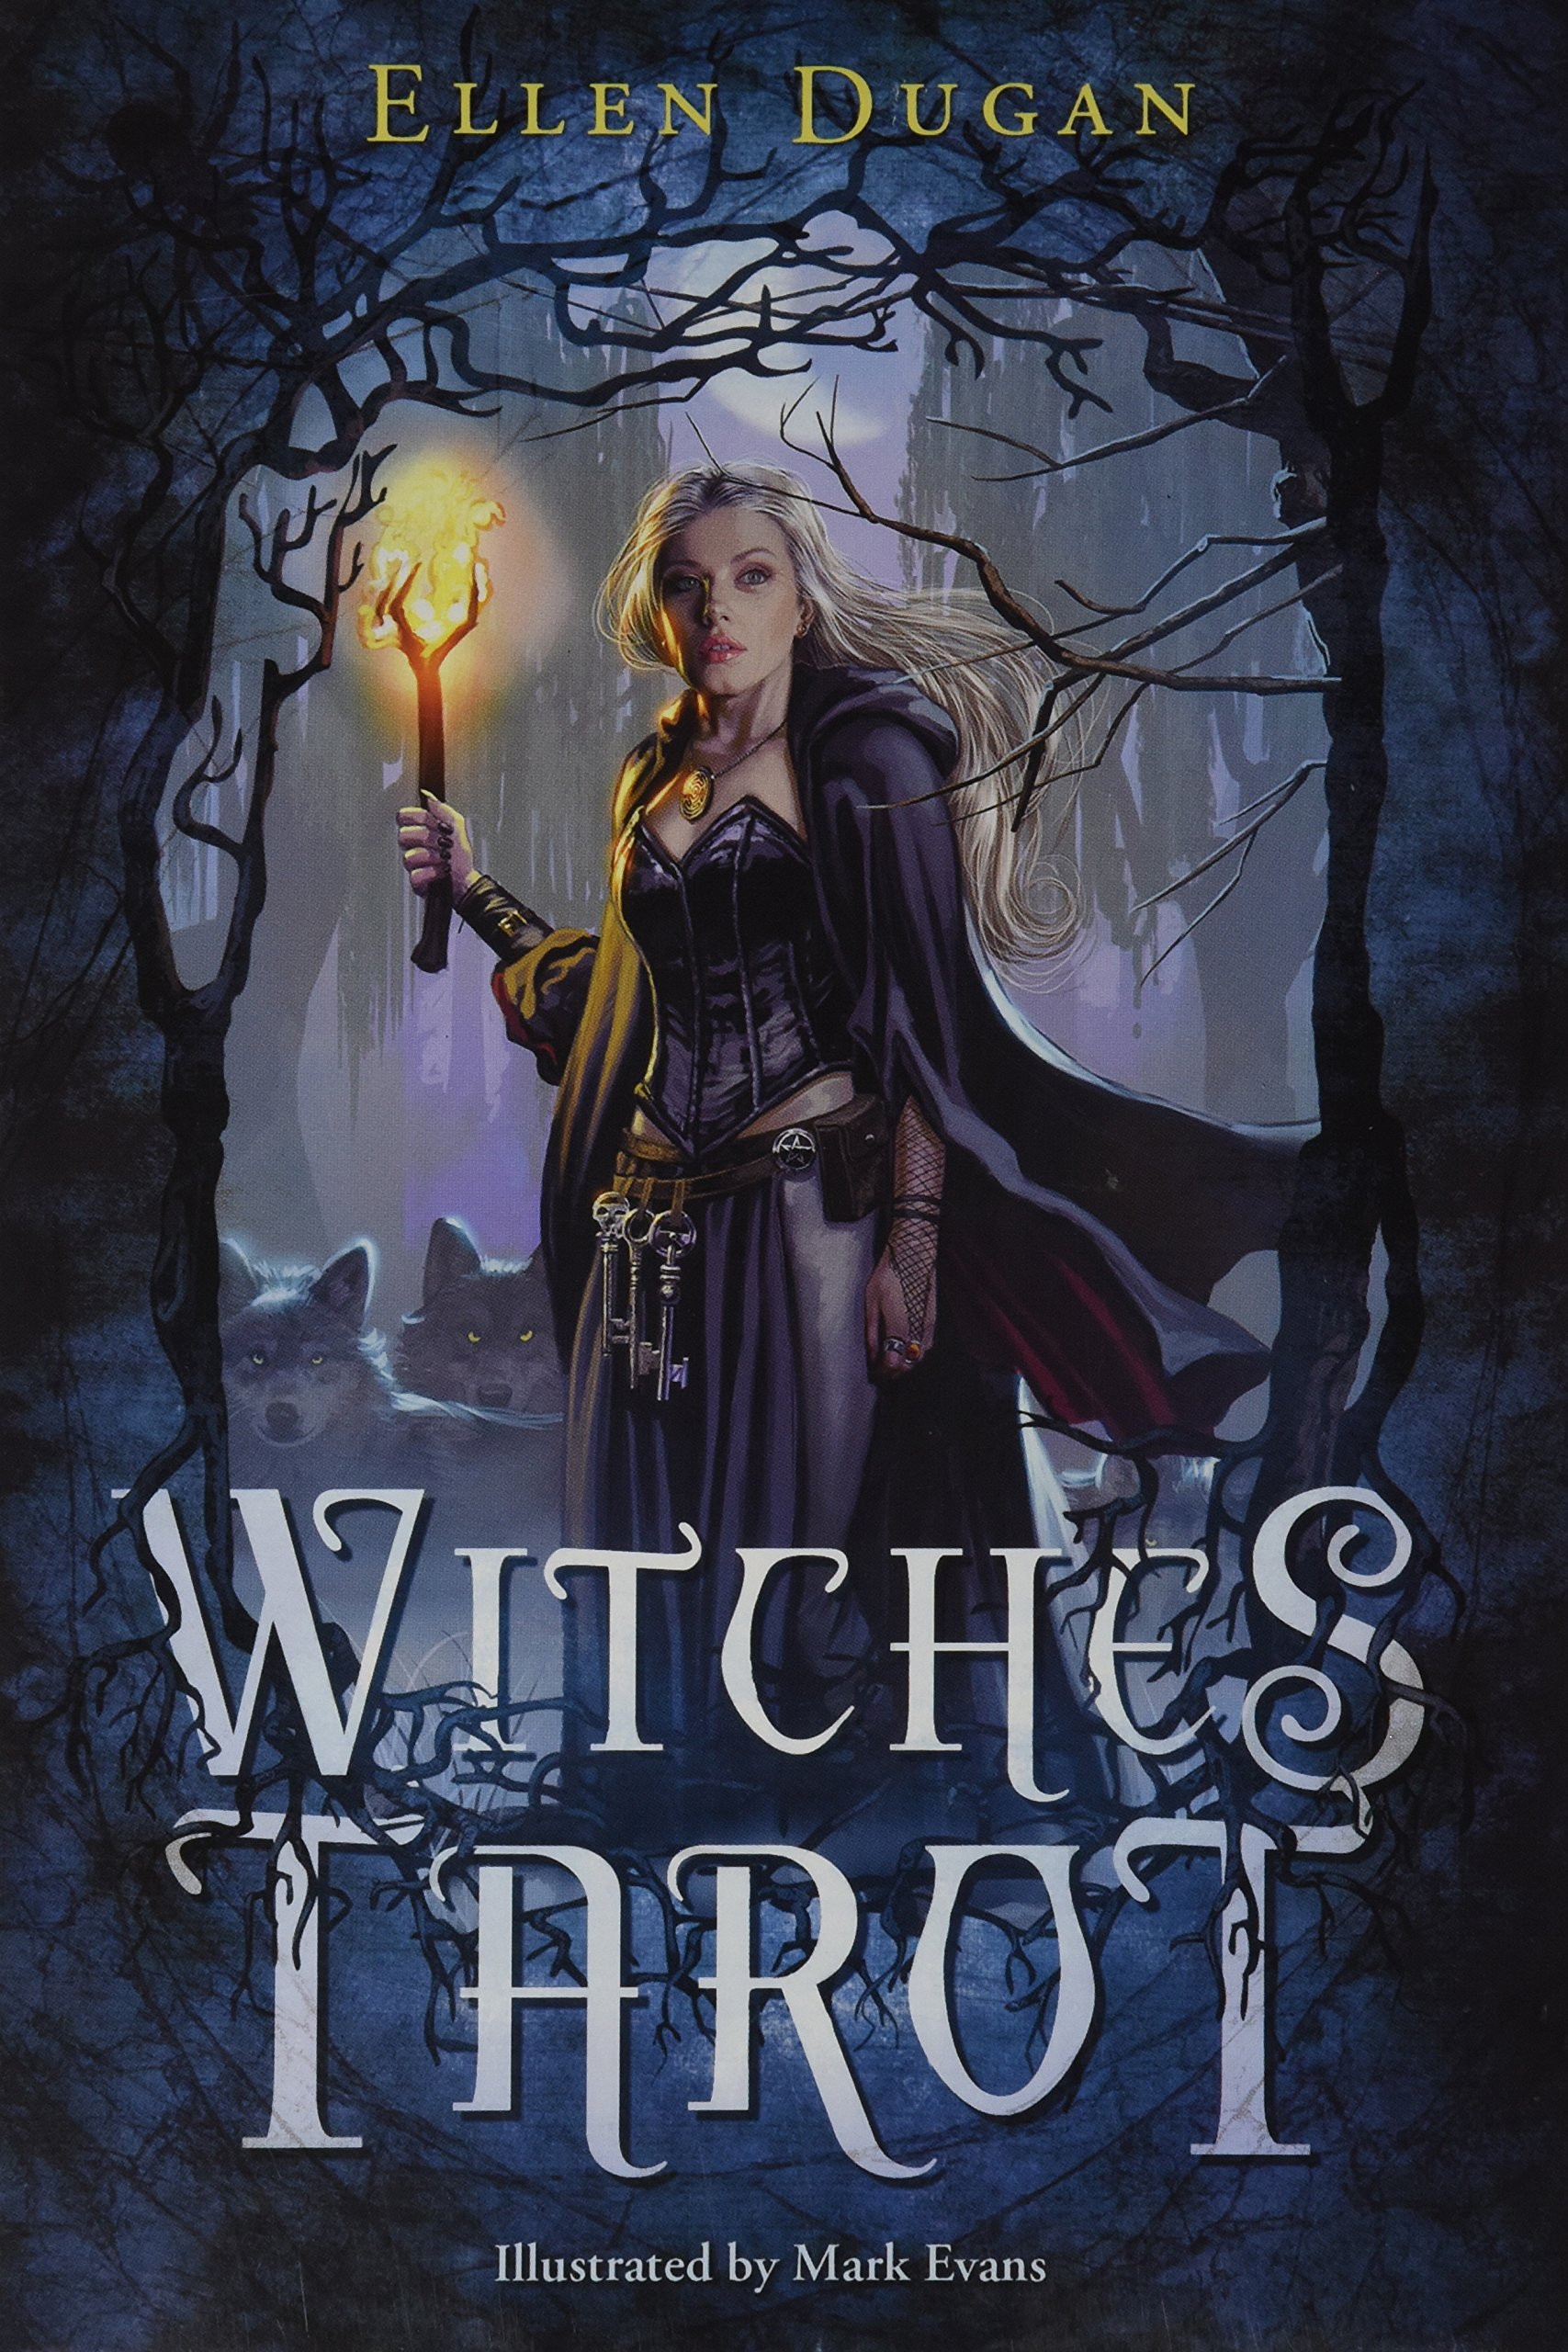 Buy witches tarot book online at low prices in india witches tarot buy witches tarot book online at low prices in india witches tarot reviews ratings amazon kristyandbryce Choice Image